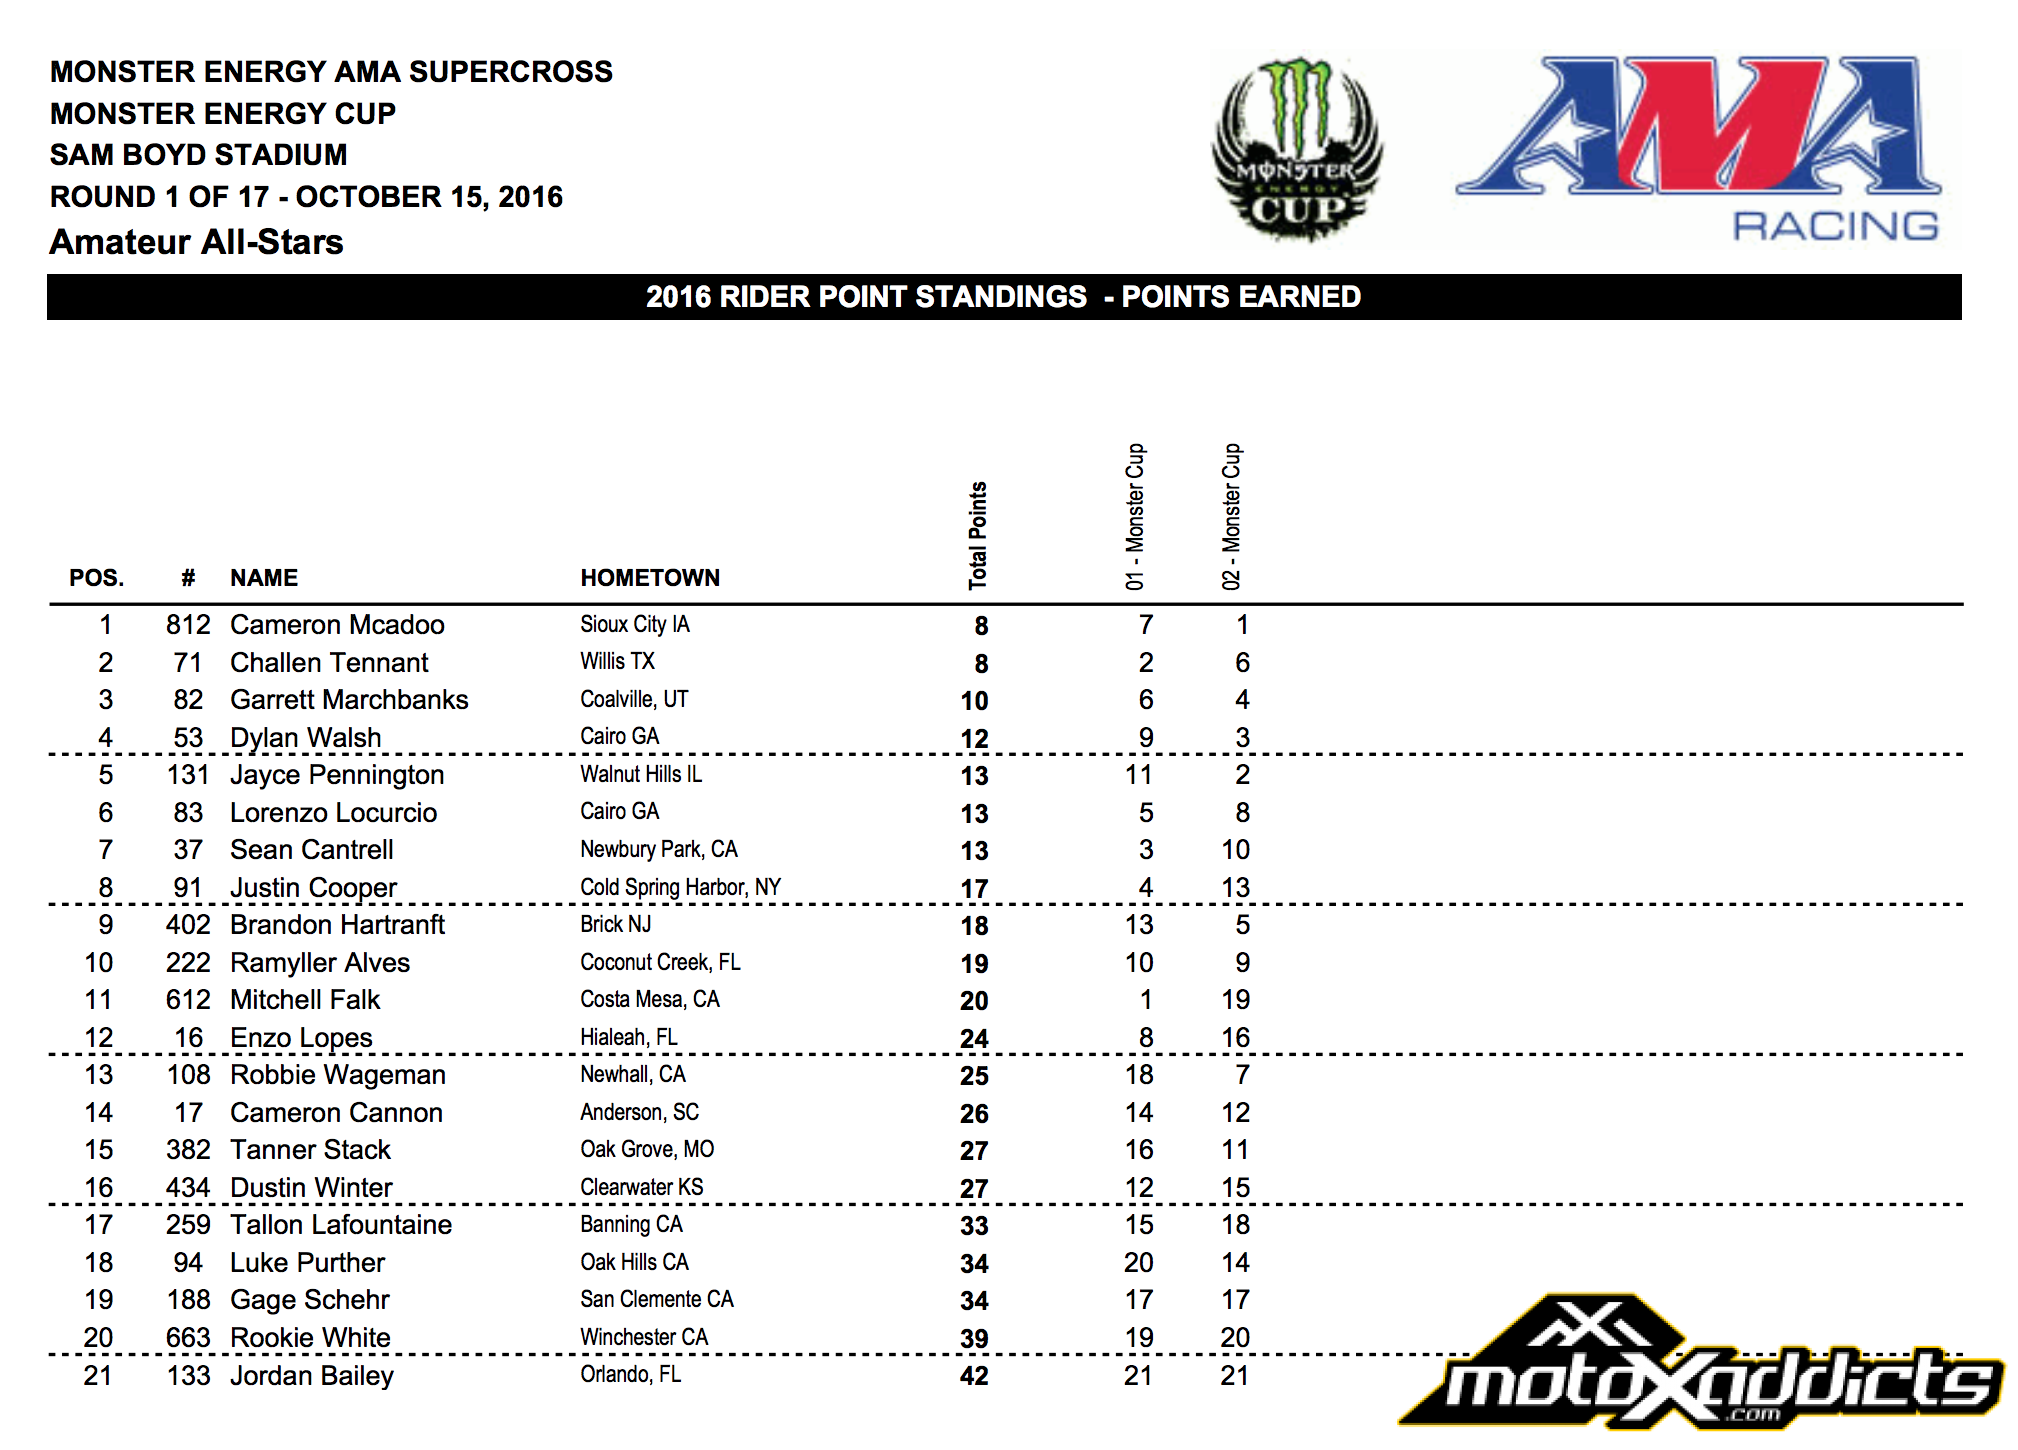 Amateur All-Star Overall Results - - 2016 Monster Energy Cup - Click to Enlarge